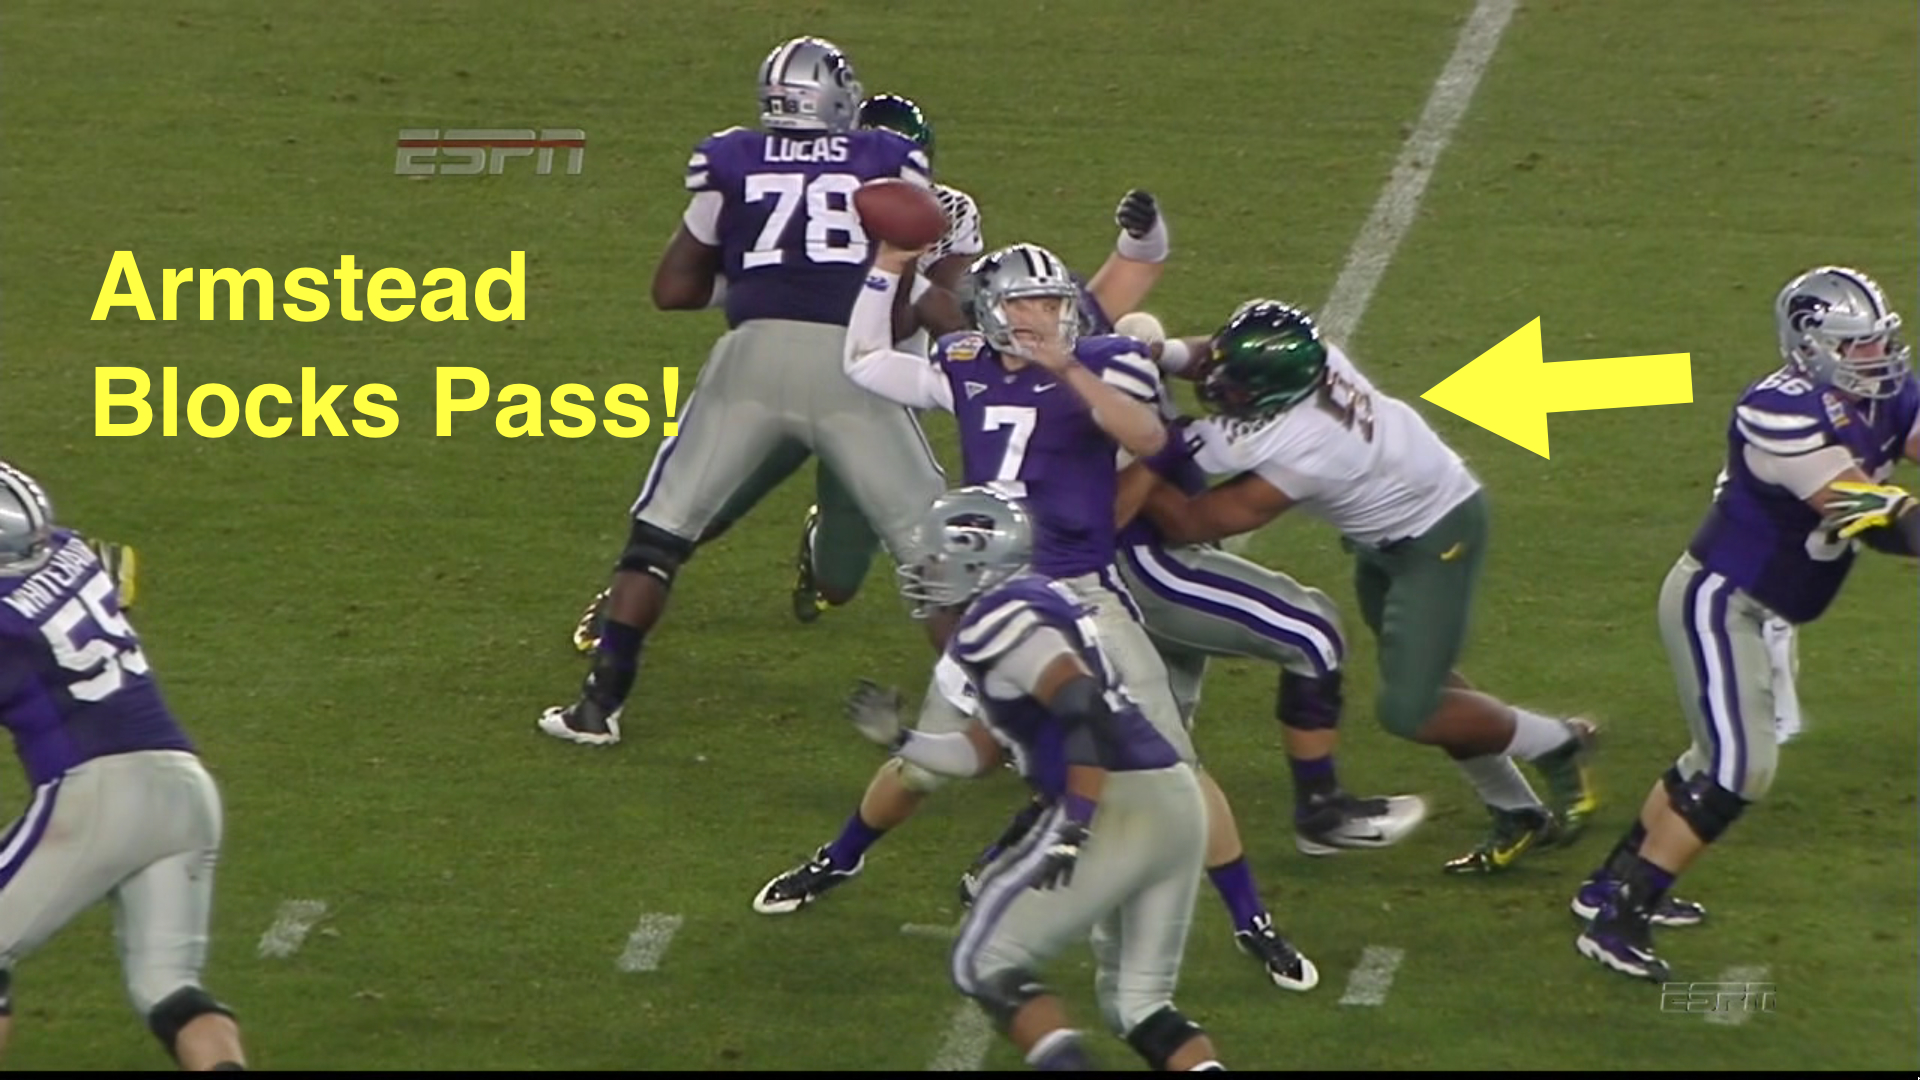 Armstead blocks pass